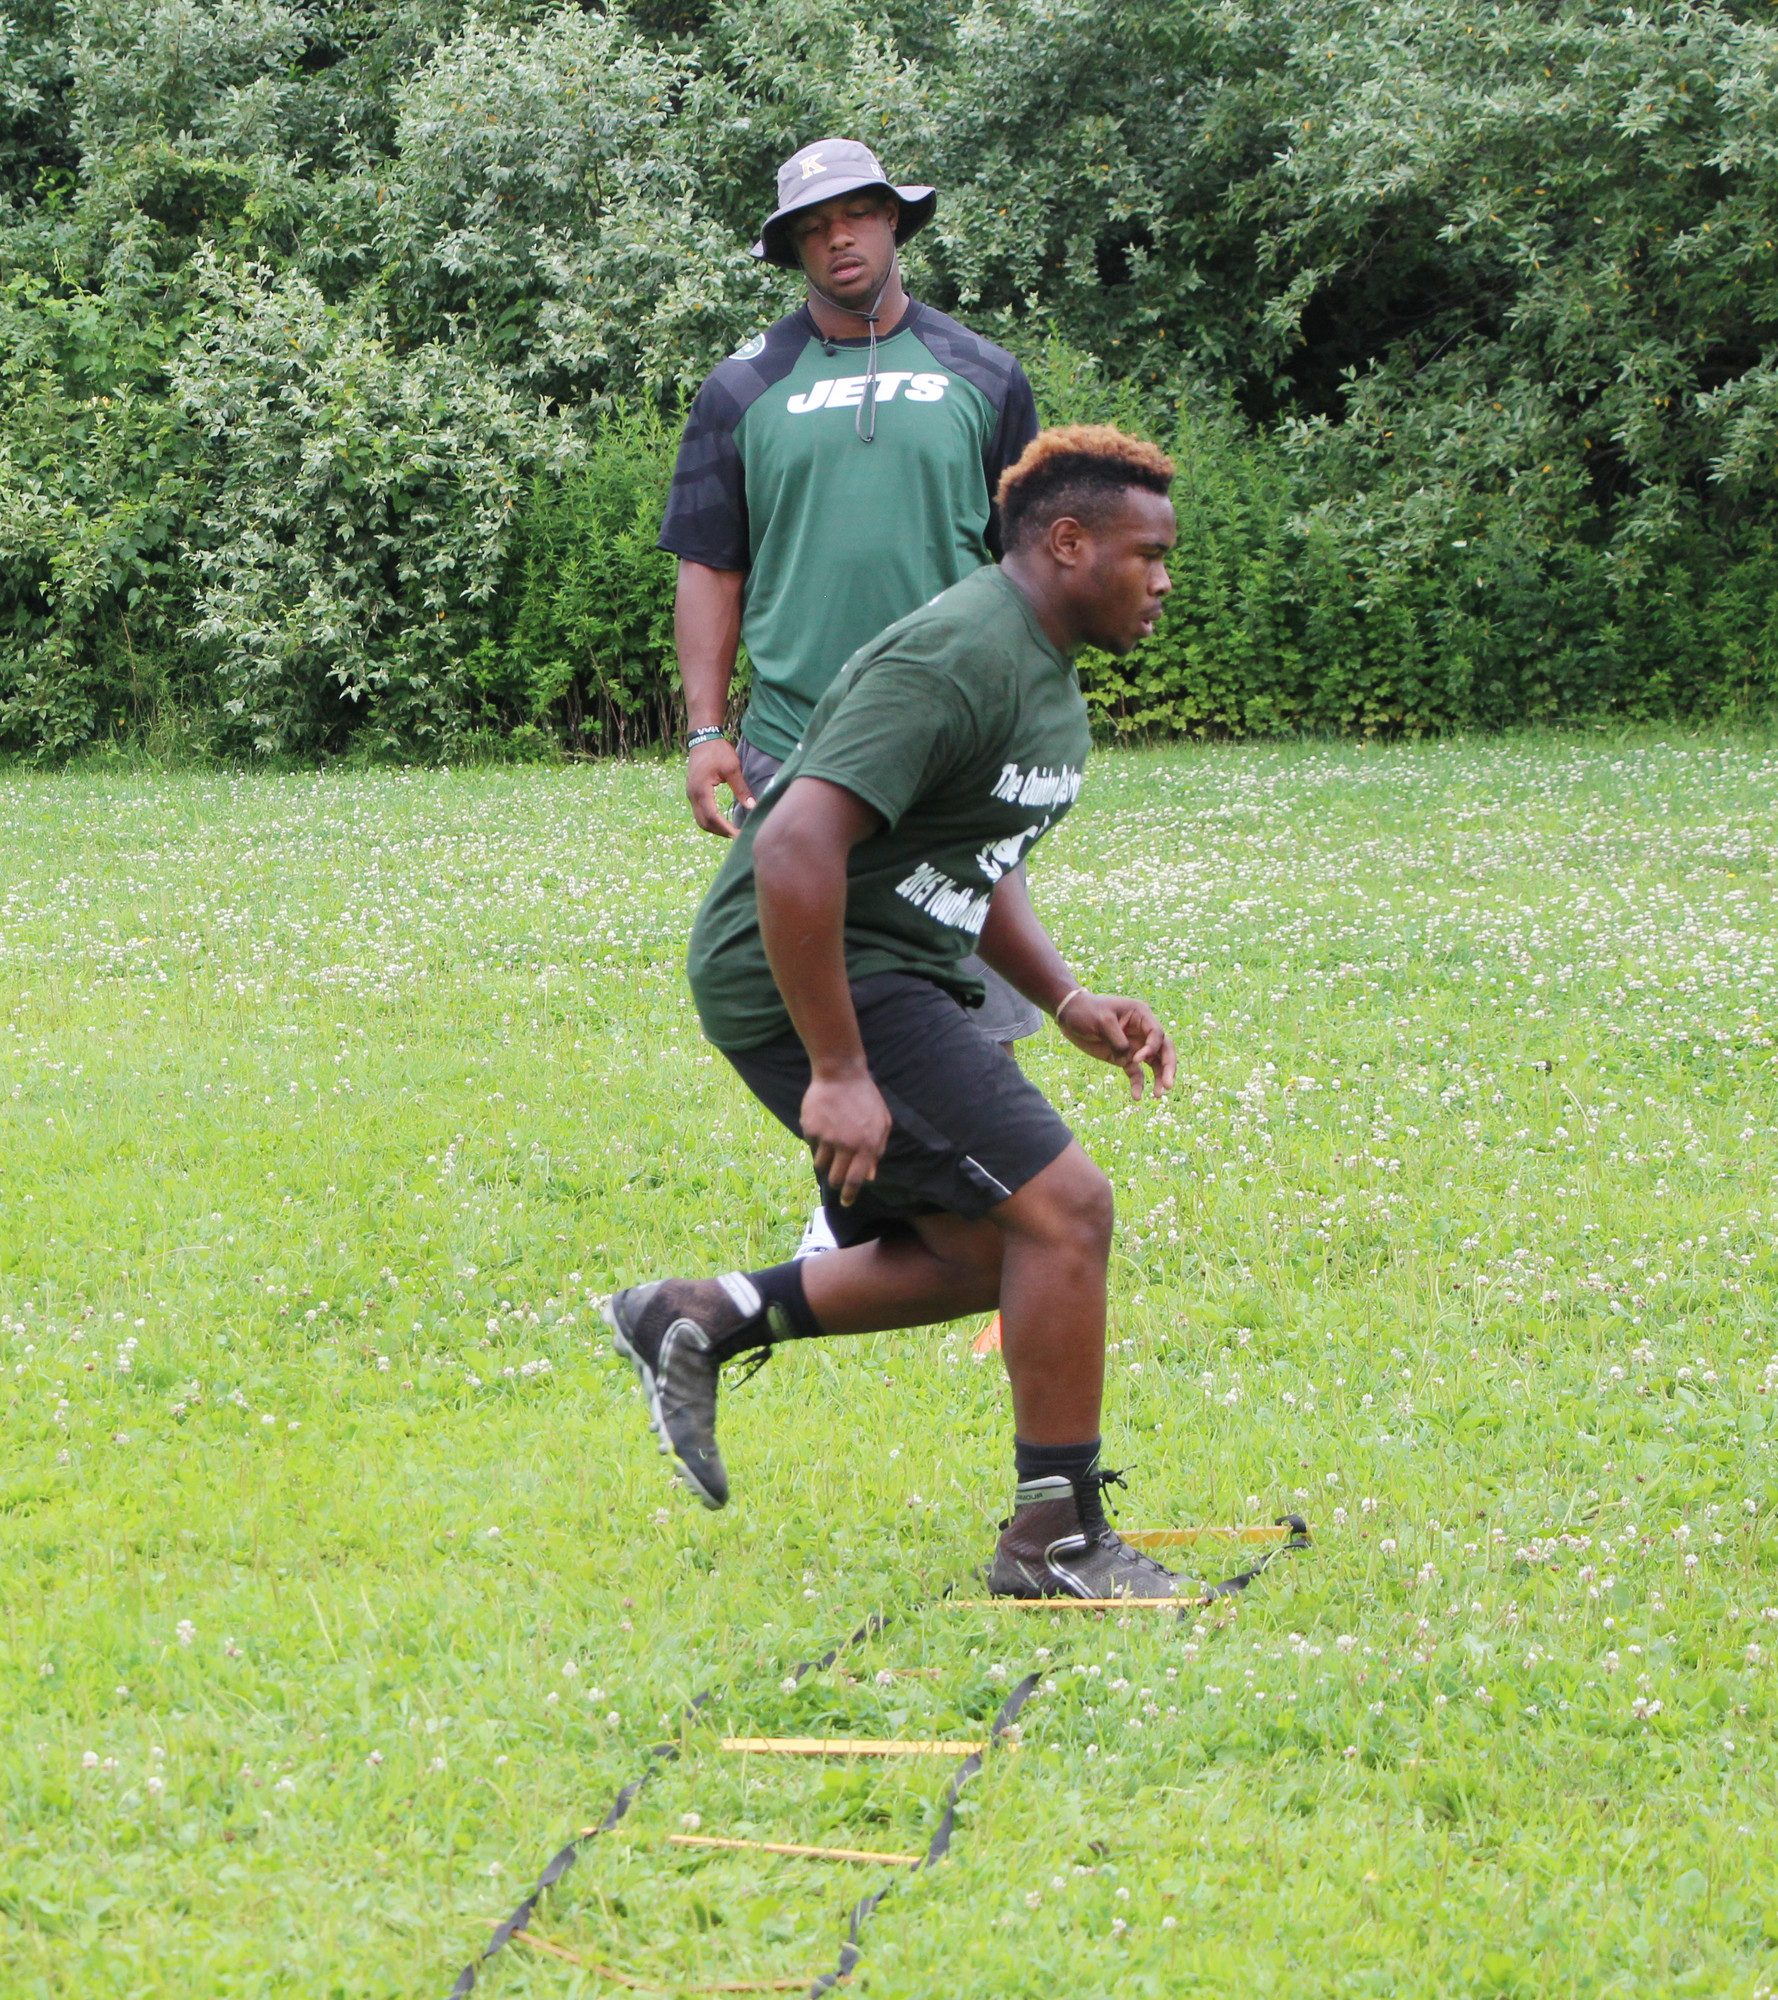 Baldwin High School football player Jahcorie Norworthy worked on his footwork as Coples watched.